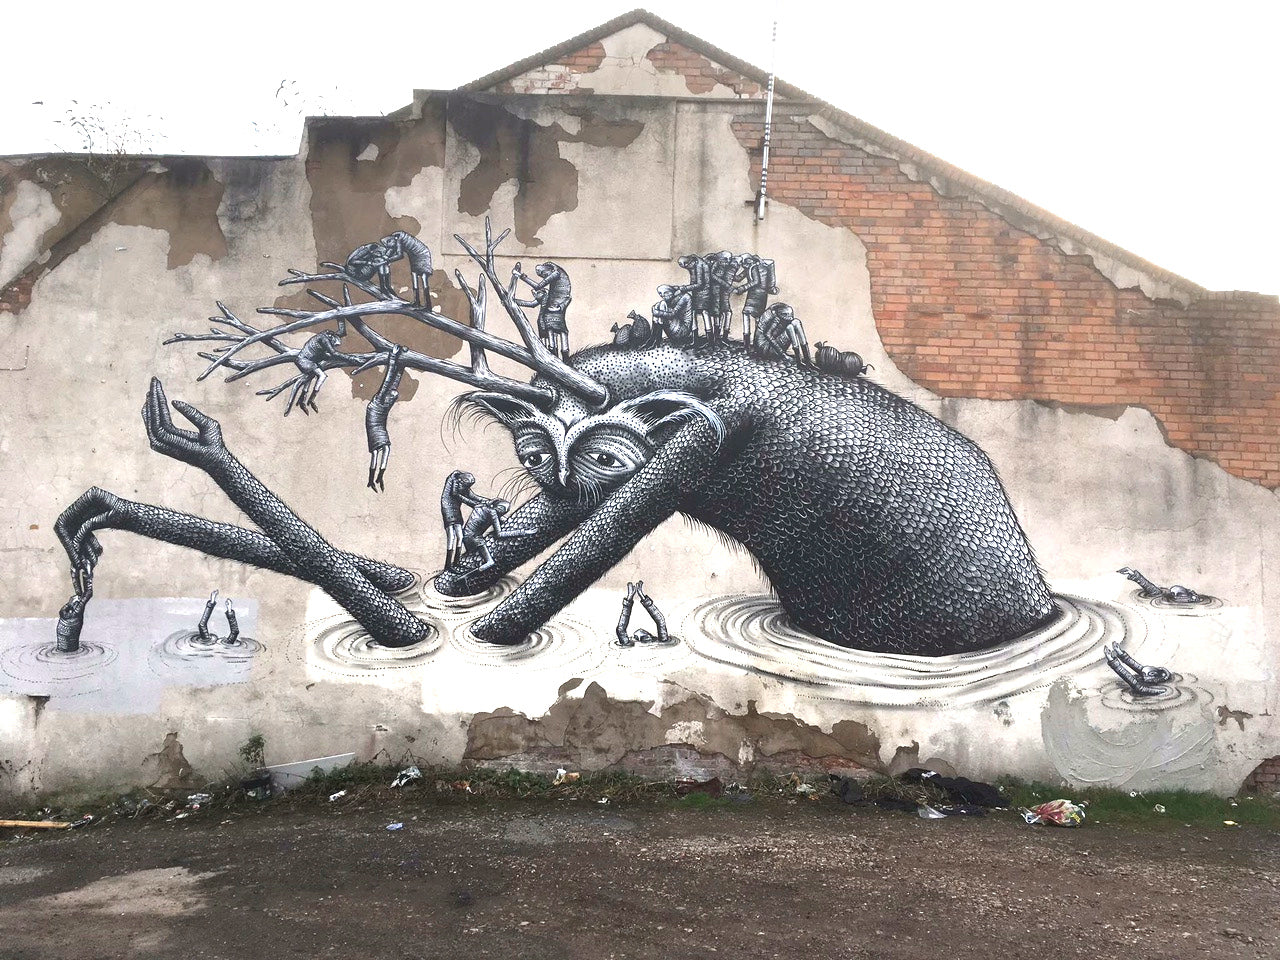 PHLEGM: Abstract Street Art Worldwide